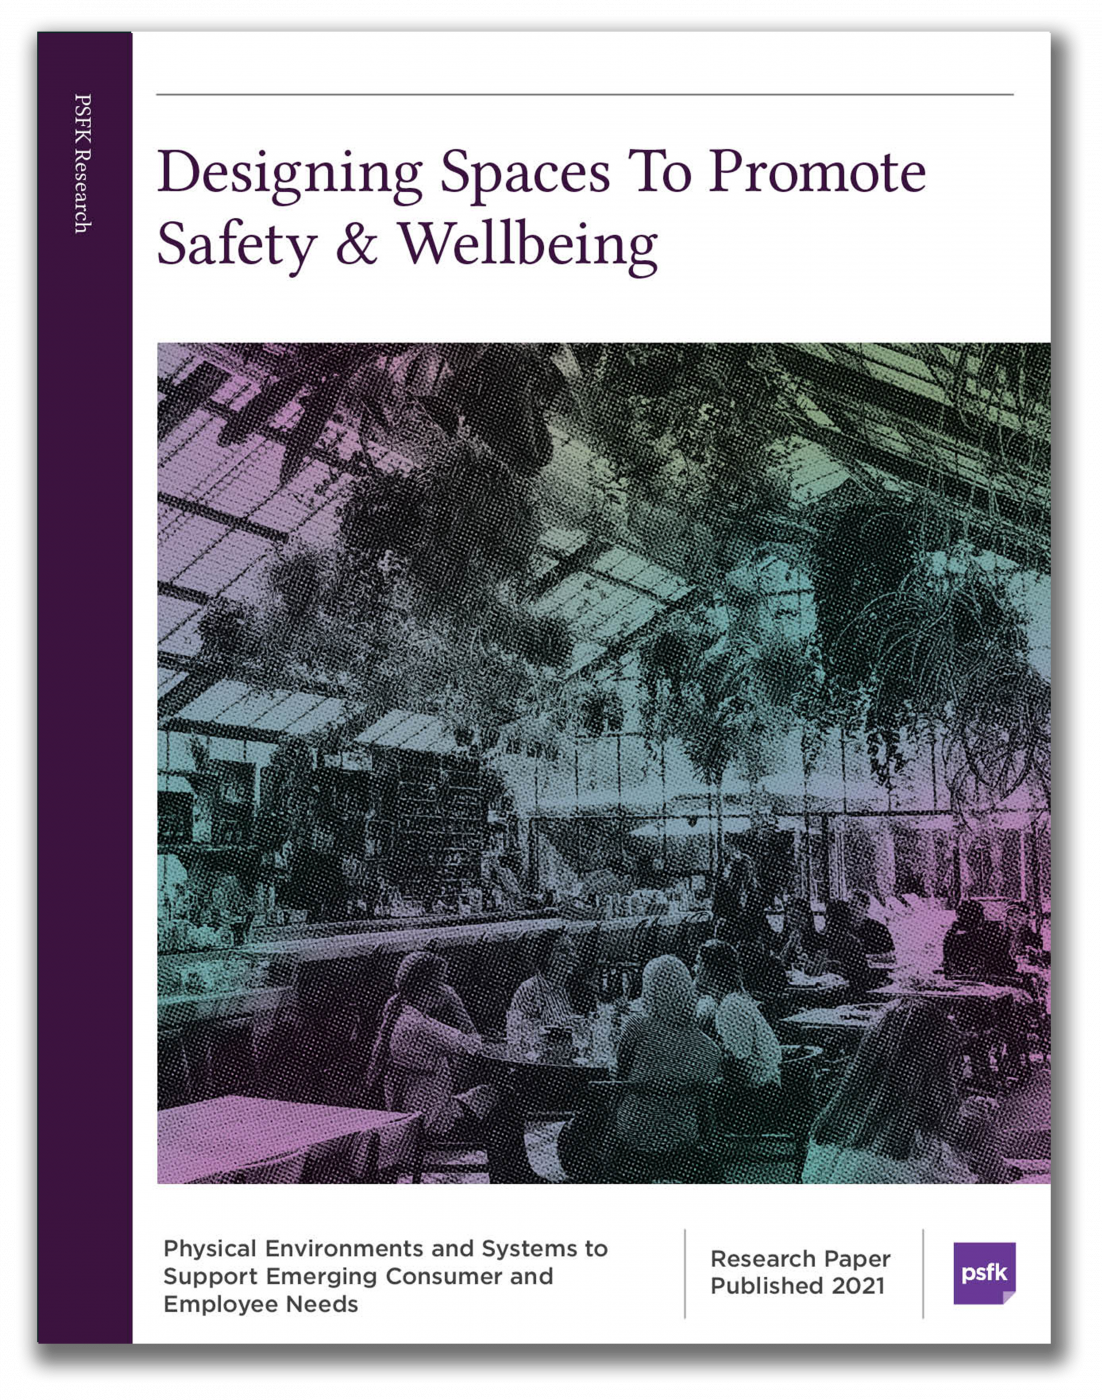 Designing Spaces To Promote Safety & Wellbeing